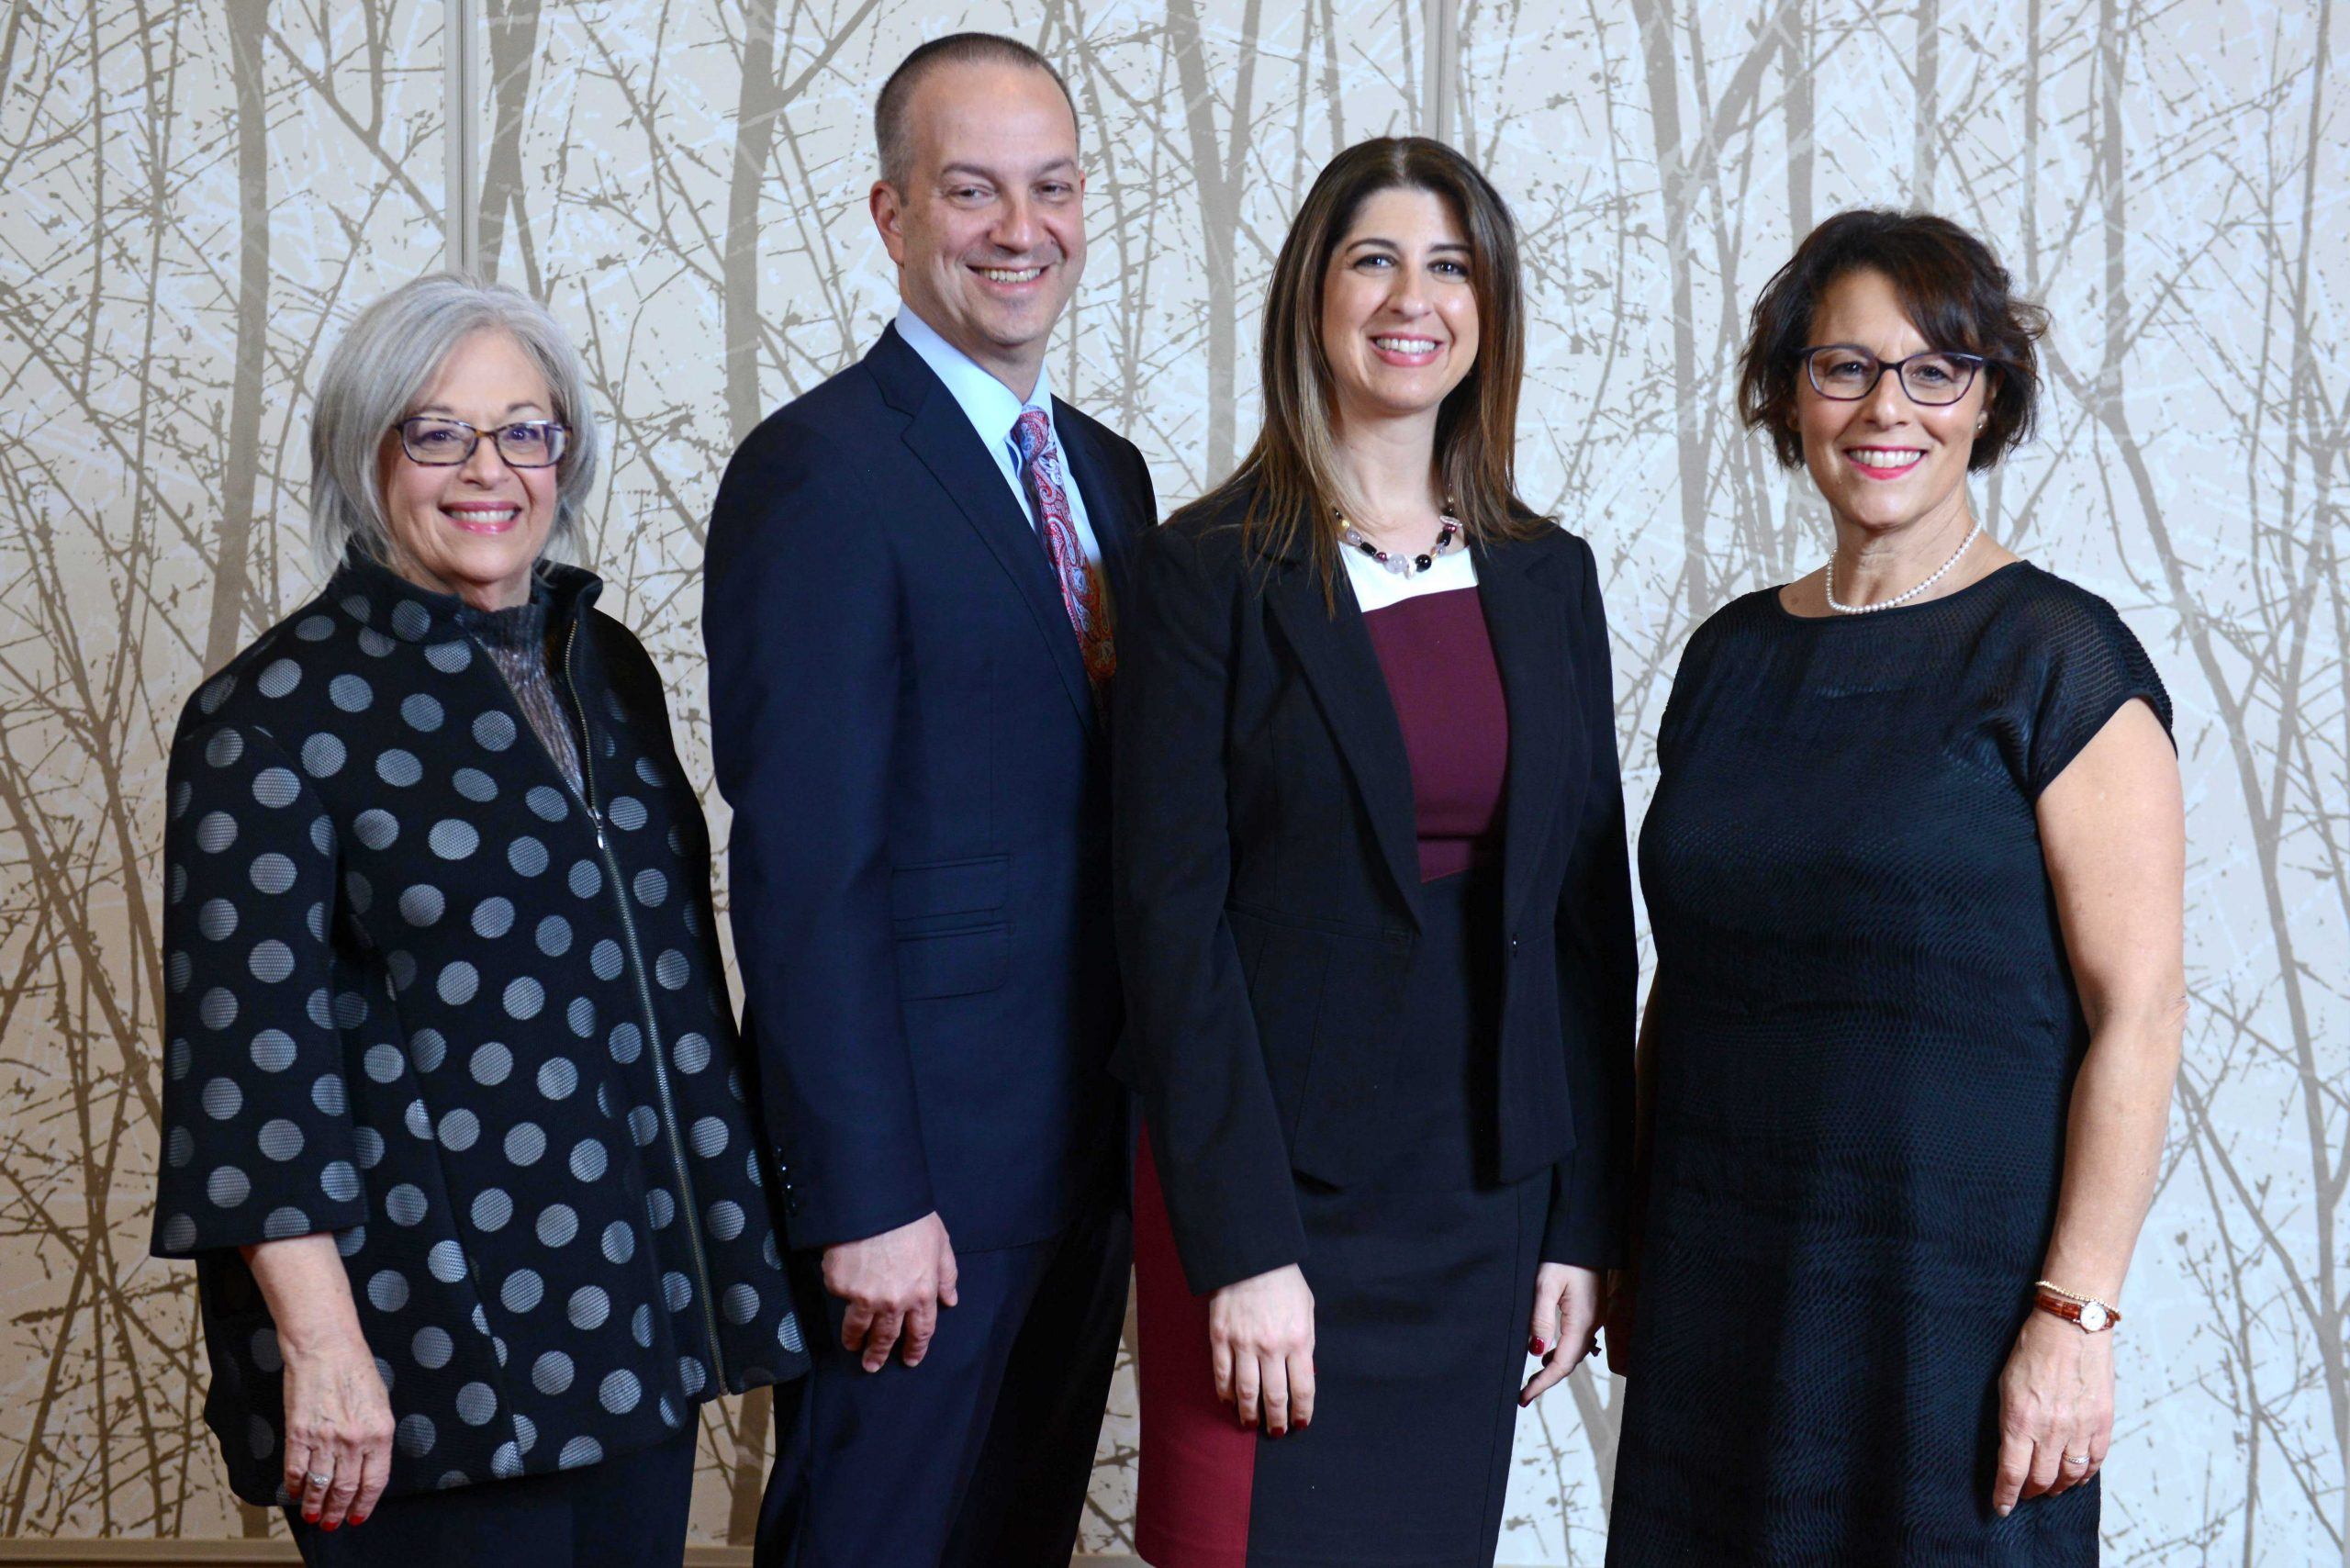 Rabbi Tully Harcsztark, Meredith Englander Polsky and Dr. Jane Shapiro Receive The 2017 Covenant Award at Annual Ceremony in L.A.